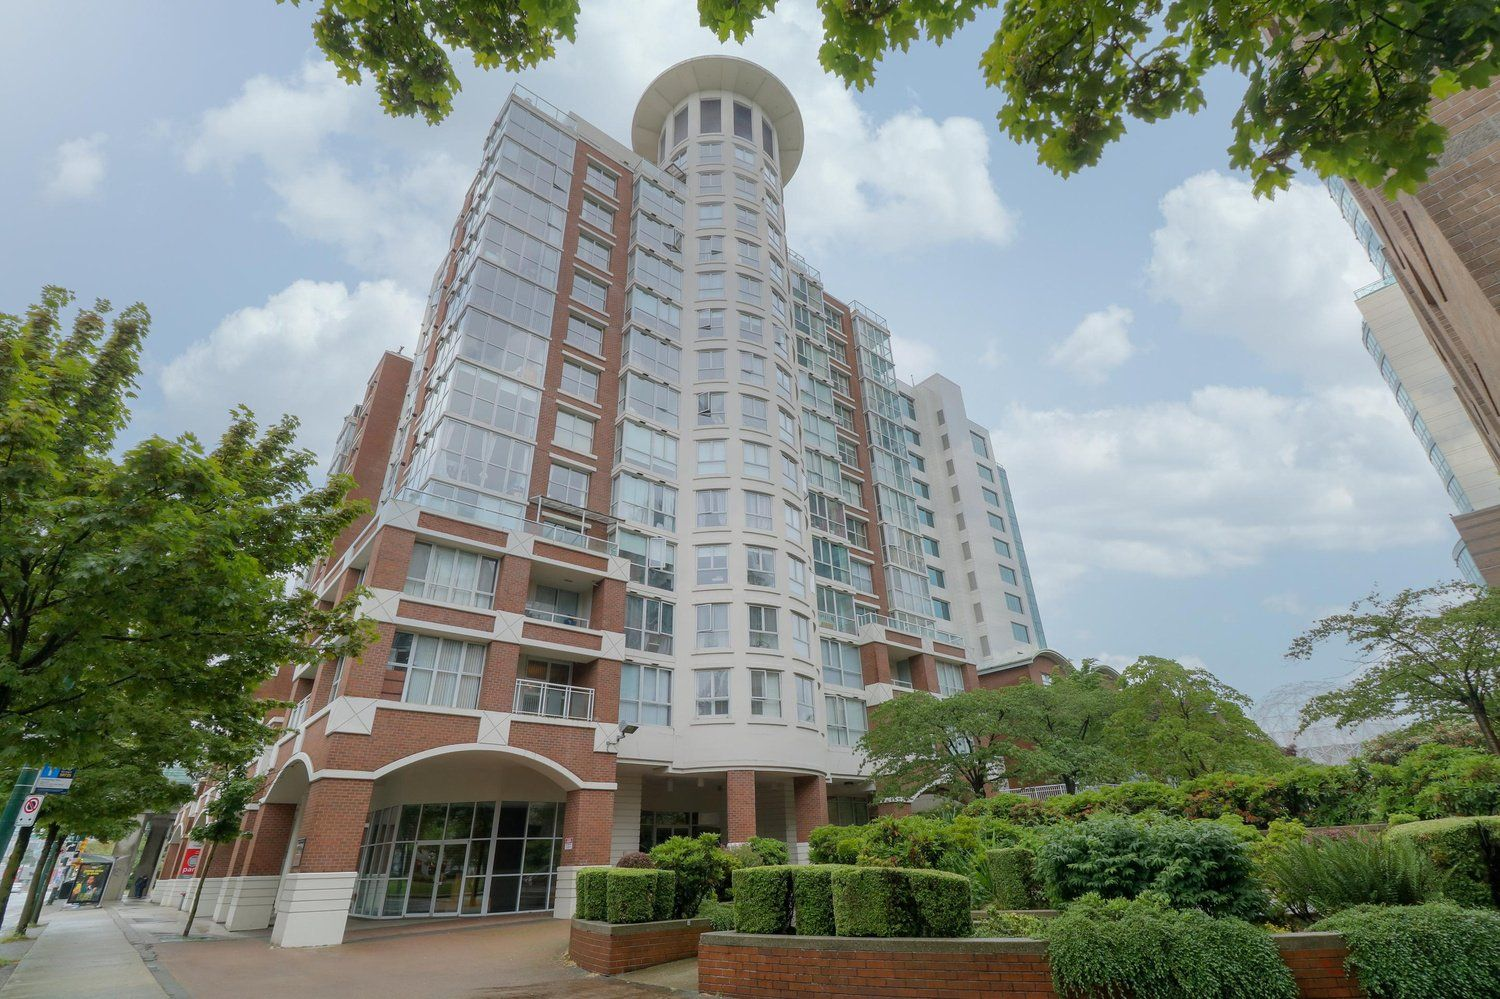 Main Photo: 1201 1255 MAIN STREET in Vancouver: Downtown VE Condo for sale (Vancouver East)  : MLS®# R2464428